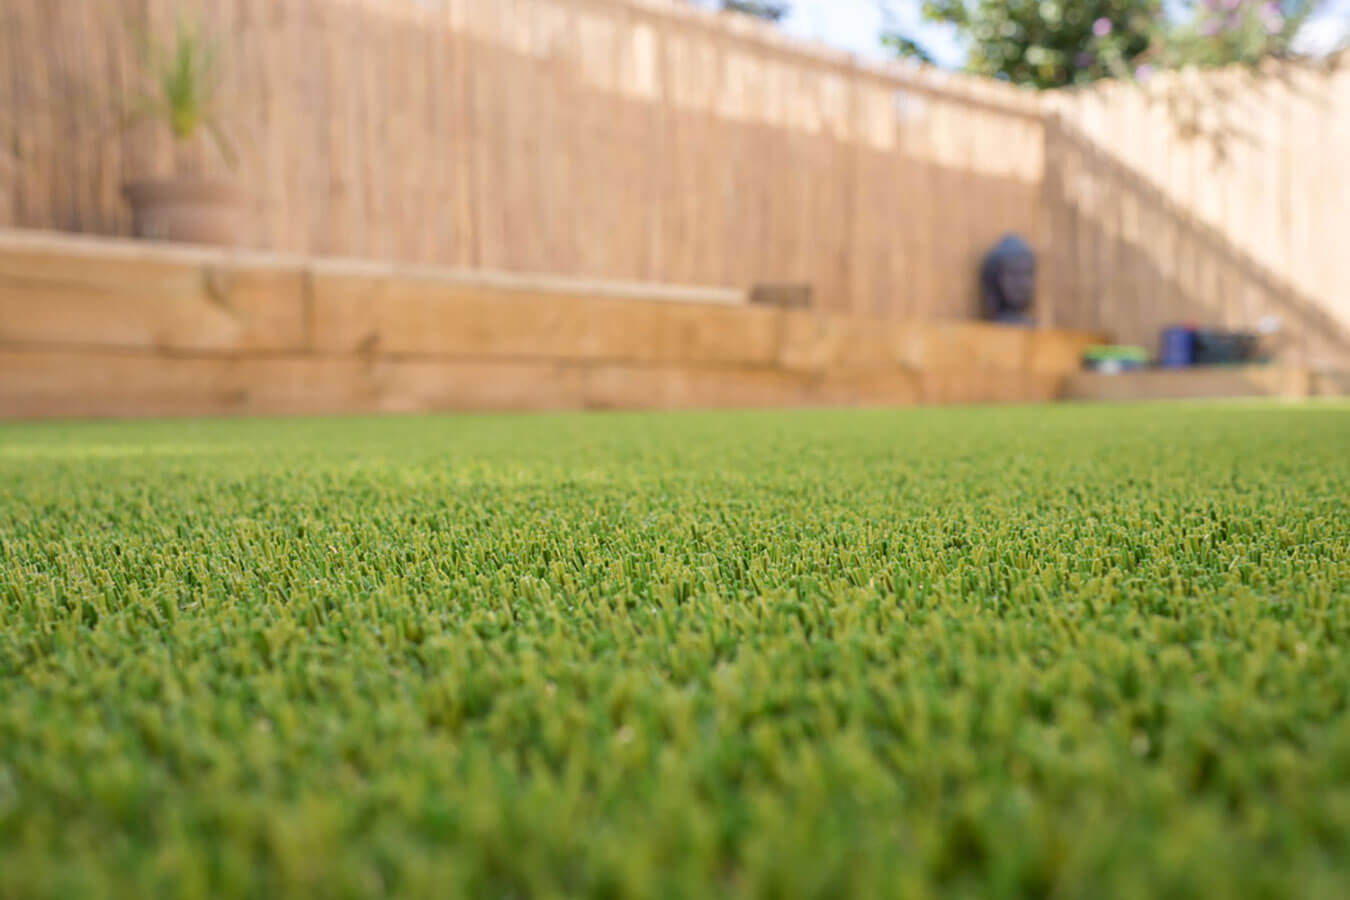 Astro Turf Garden >> Buy Artificial Grass and Synthetic Turf (Astro Turf) from Royal Grass UK